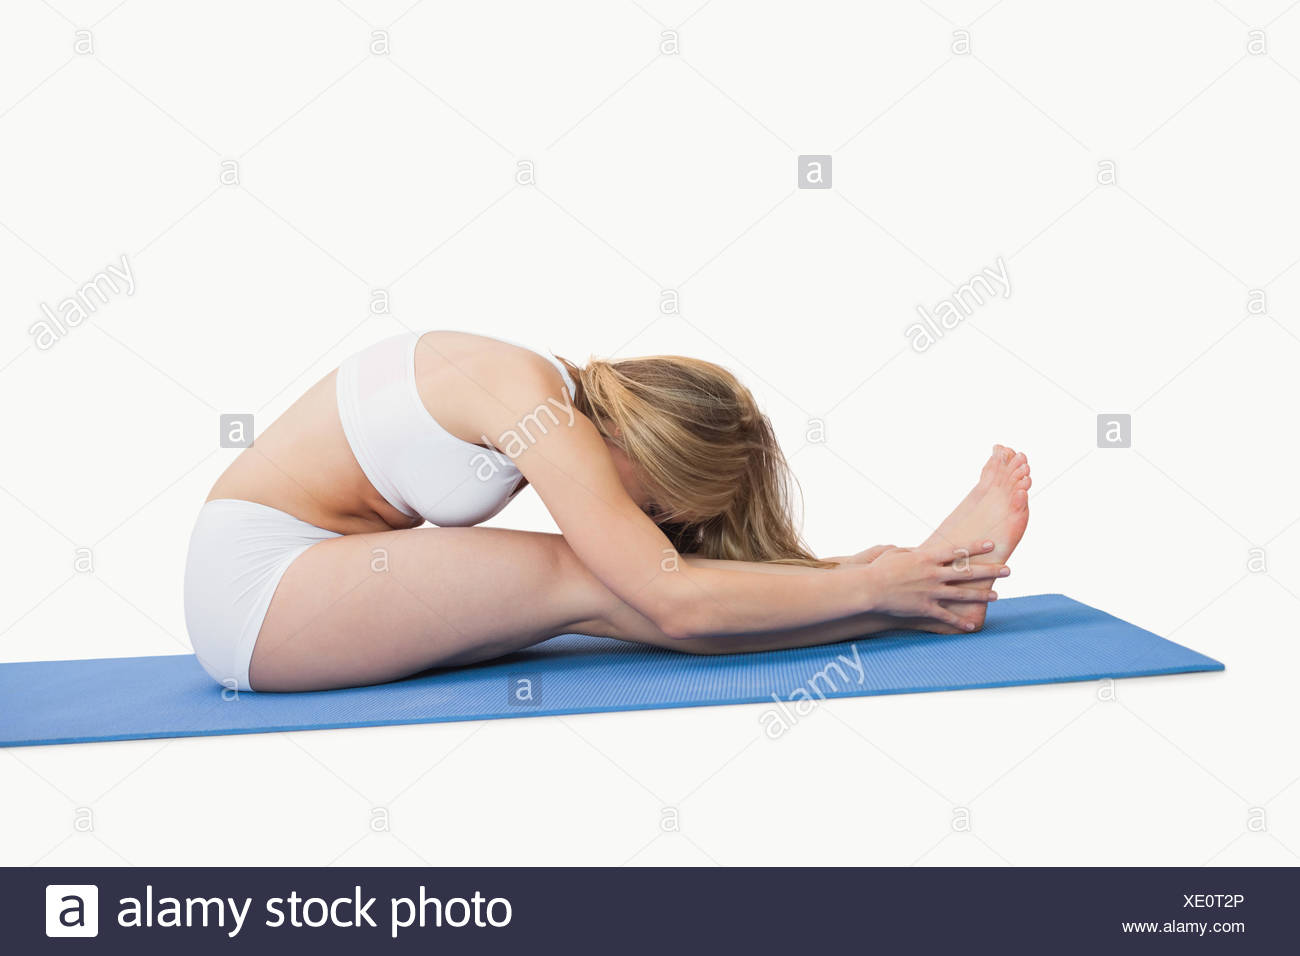 Side view of young woman doing the paschimottanasana pose over white background - Stock Image